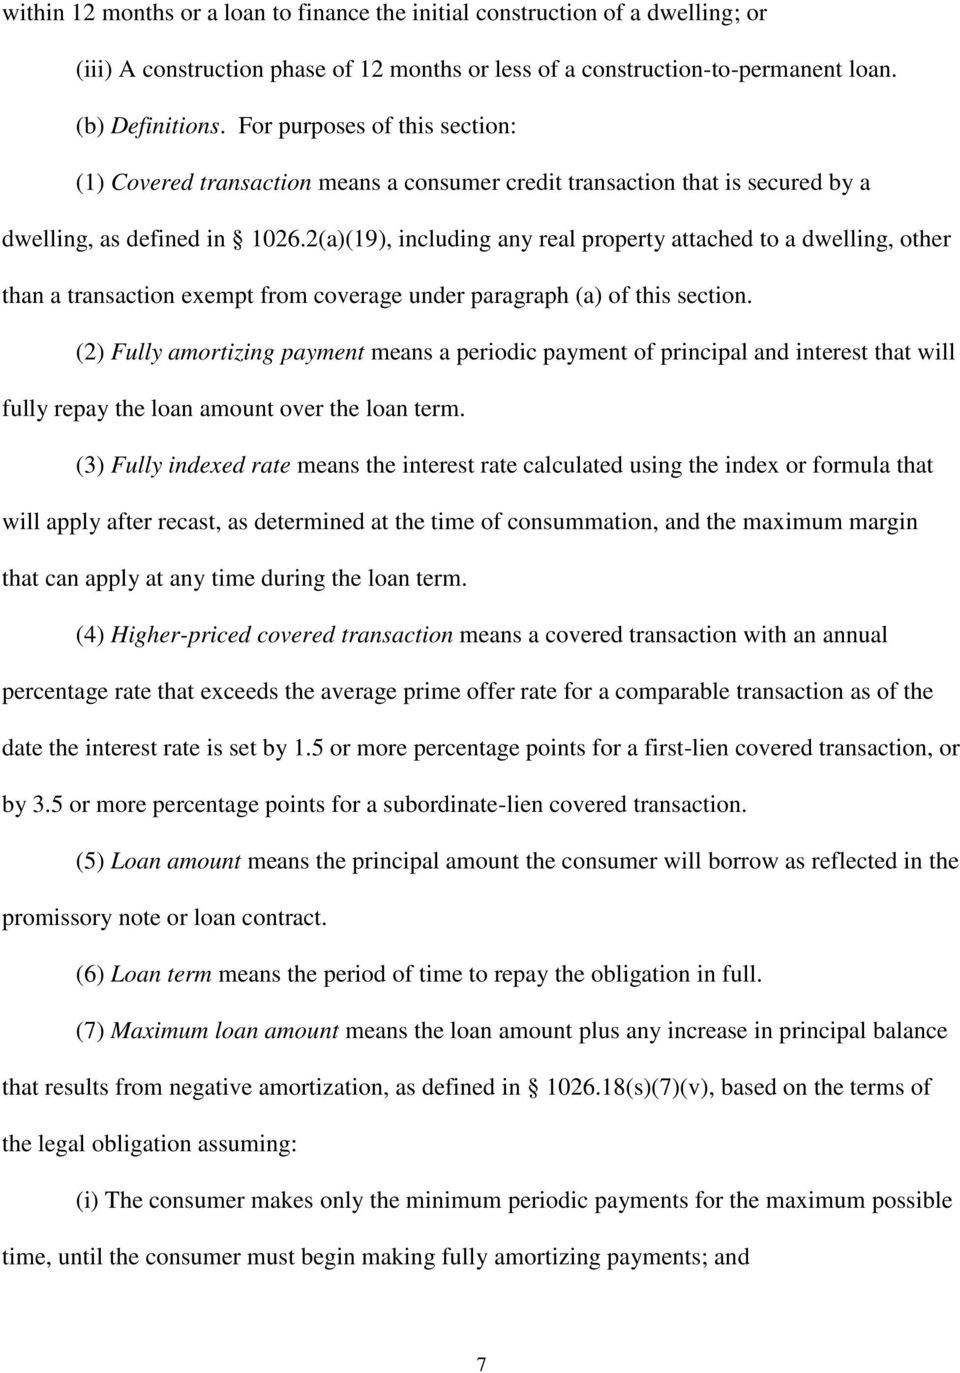 2(a)(19), including any real property attached to a dwelling, other than a transaction exempt from coverage under paragraph (a) of this section.